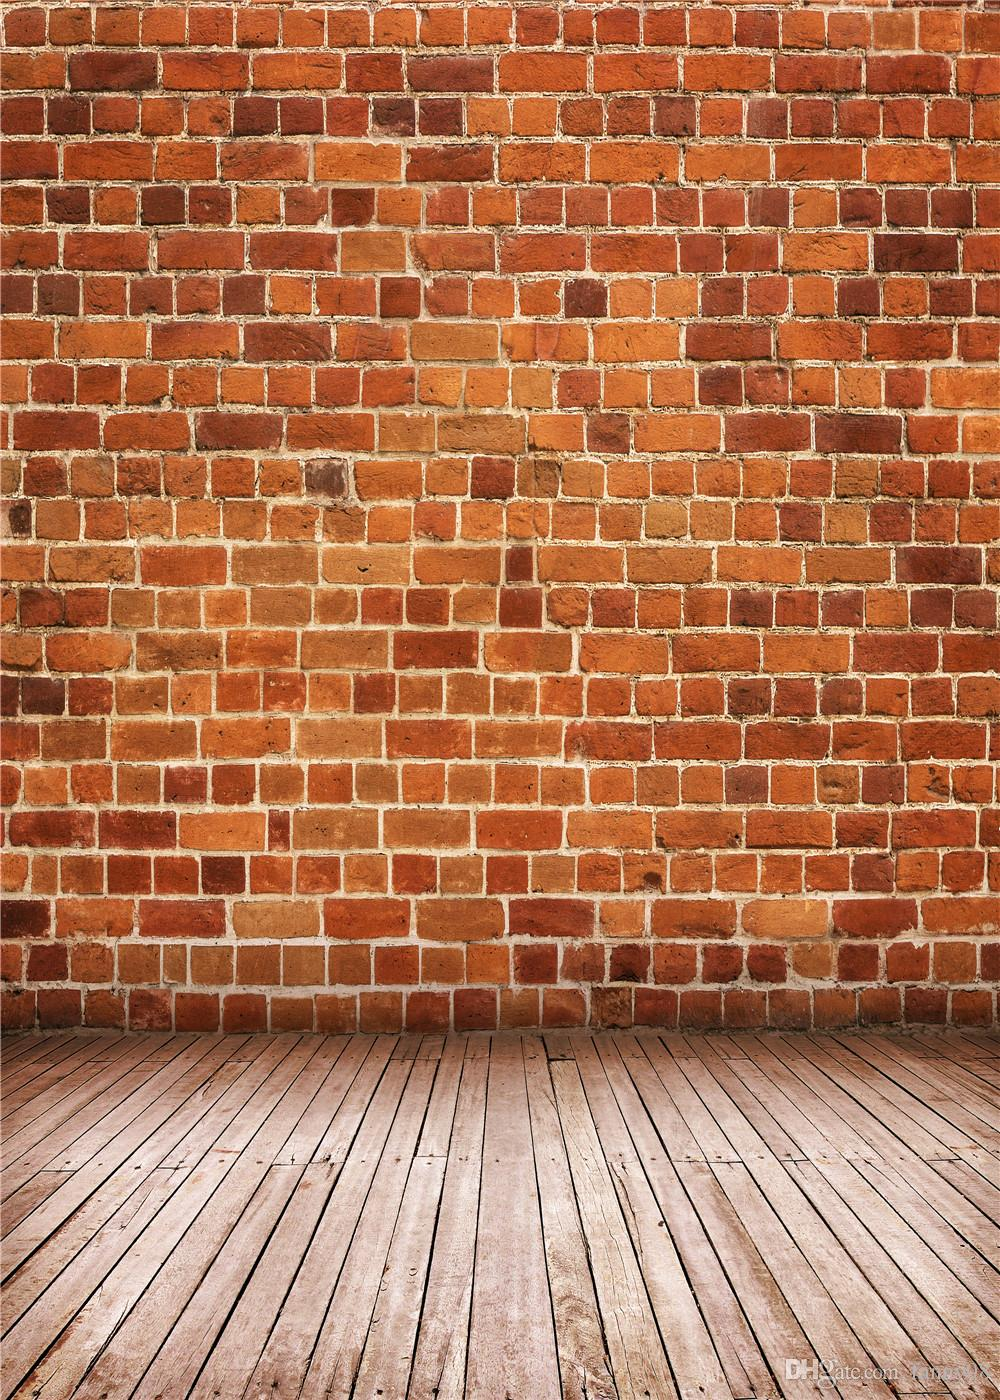 2018 5x7ft150x210cm Red Brick Wall Photo Studio Background Grey Wood Floor  Photography Backdrops For Newborn Studio From Fanny08, $22.72 | Dhgate.Com